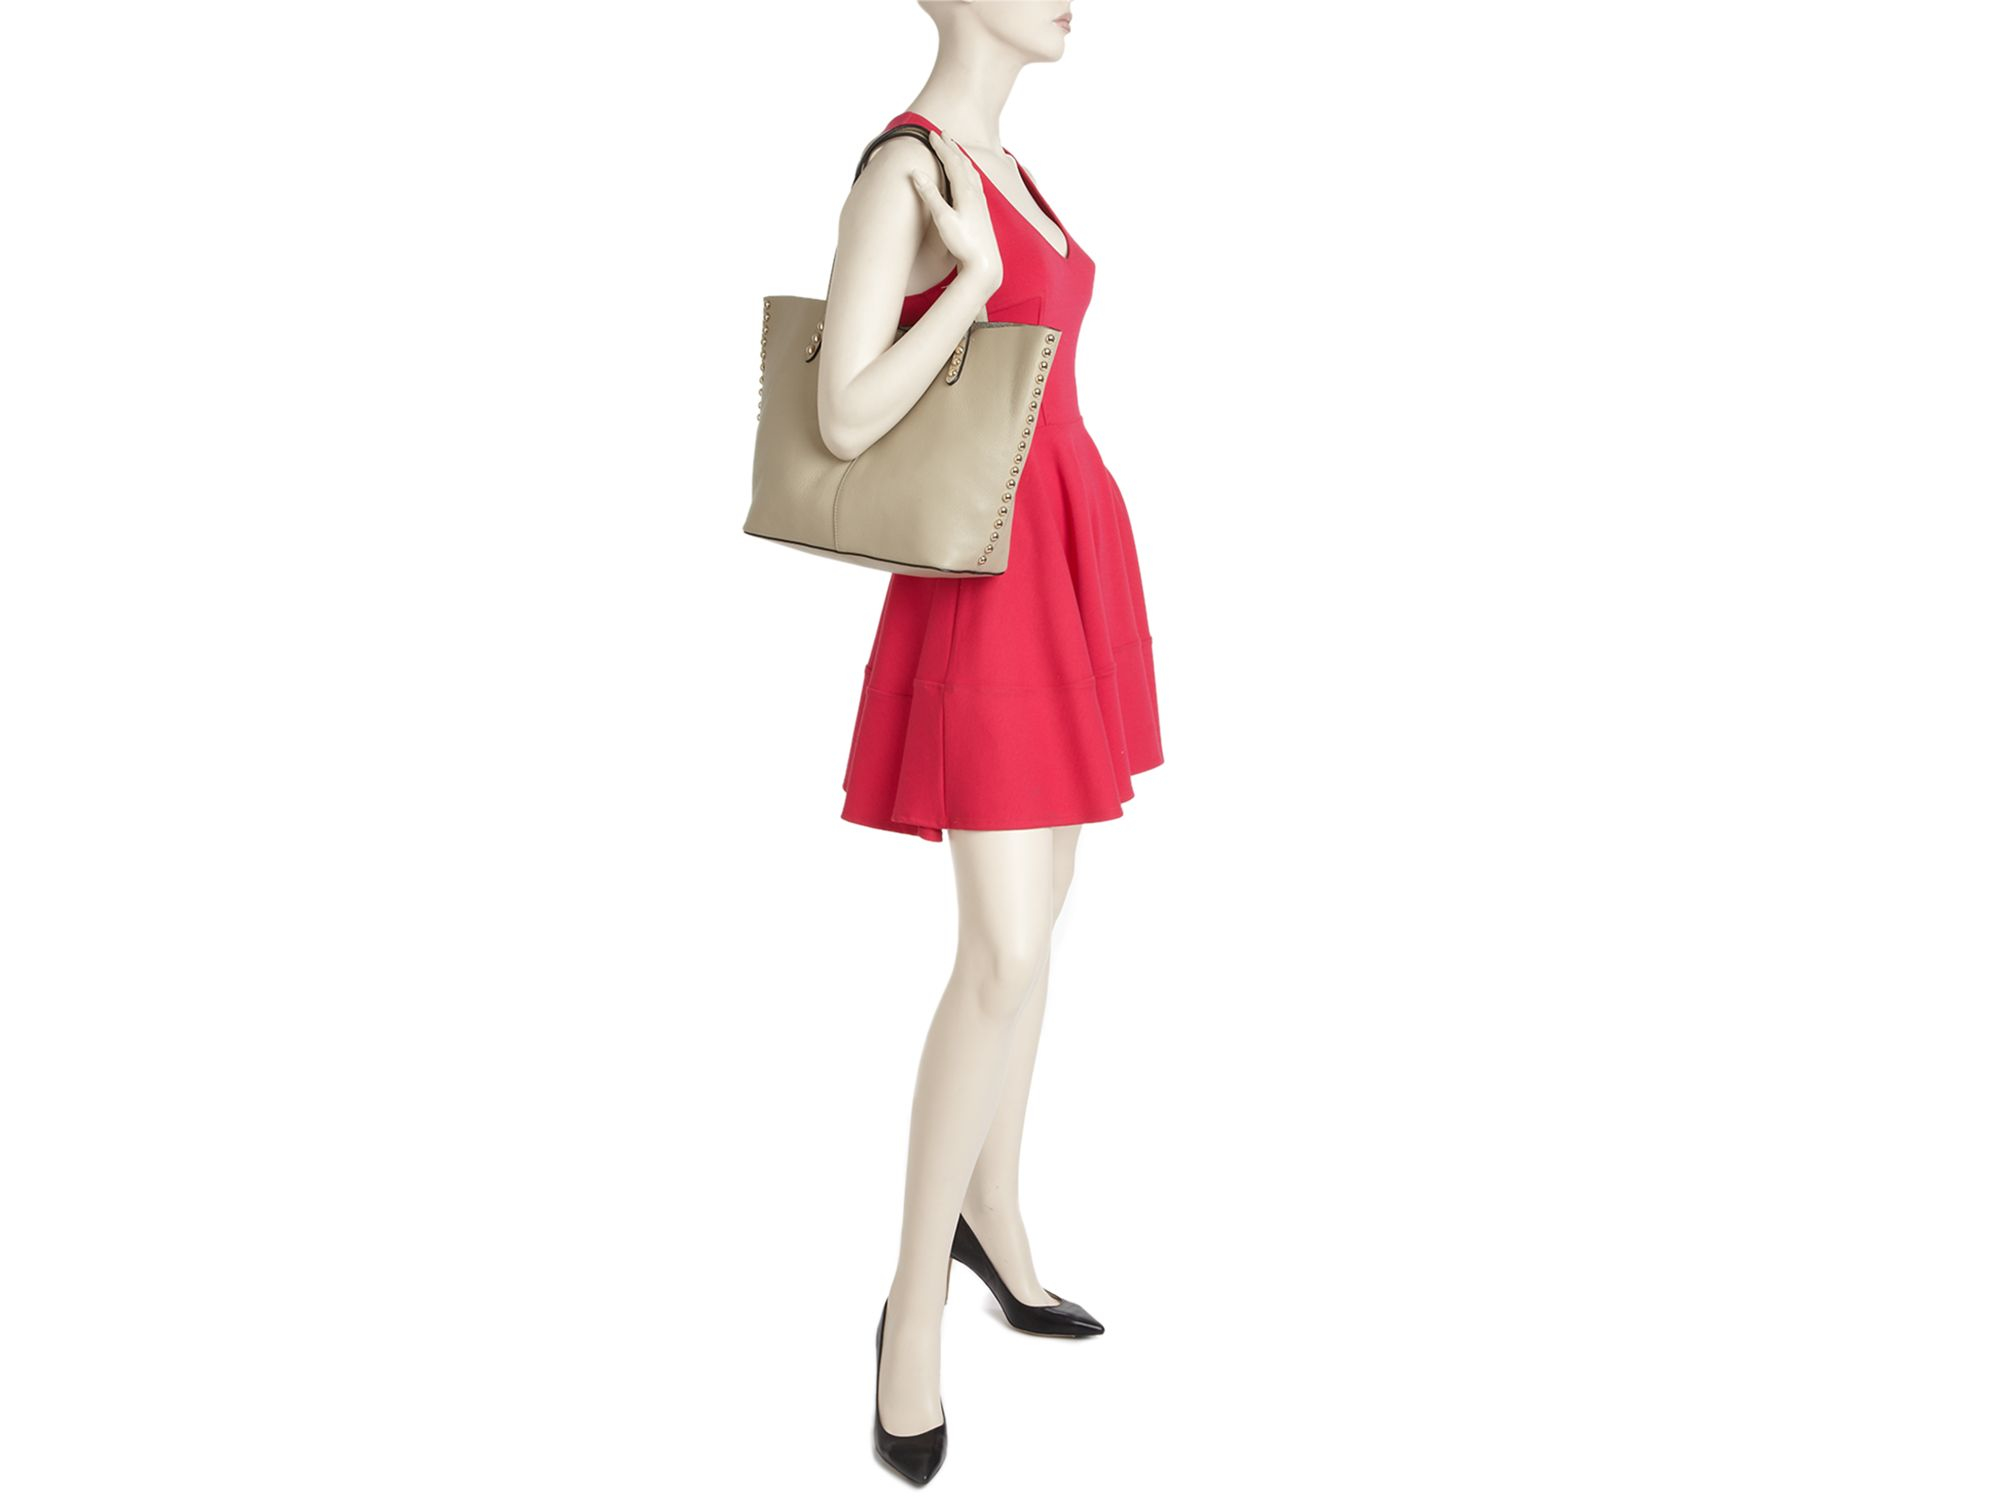 Rebecca Minkoff Leather Tote - Unlined in Flamingo (Natural)